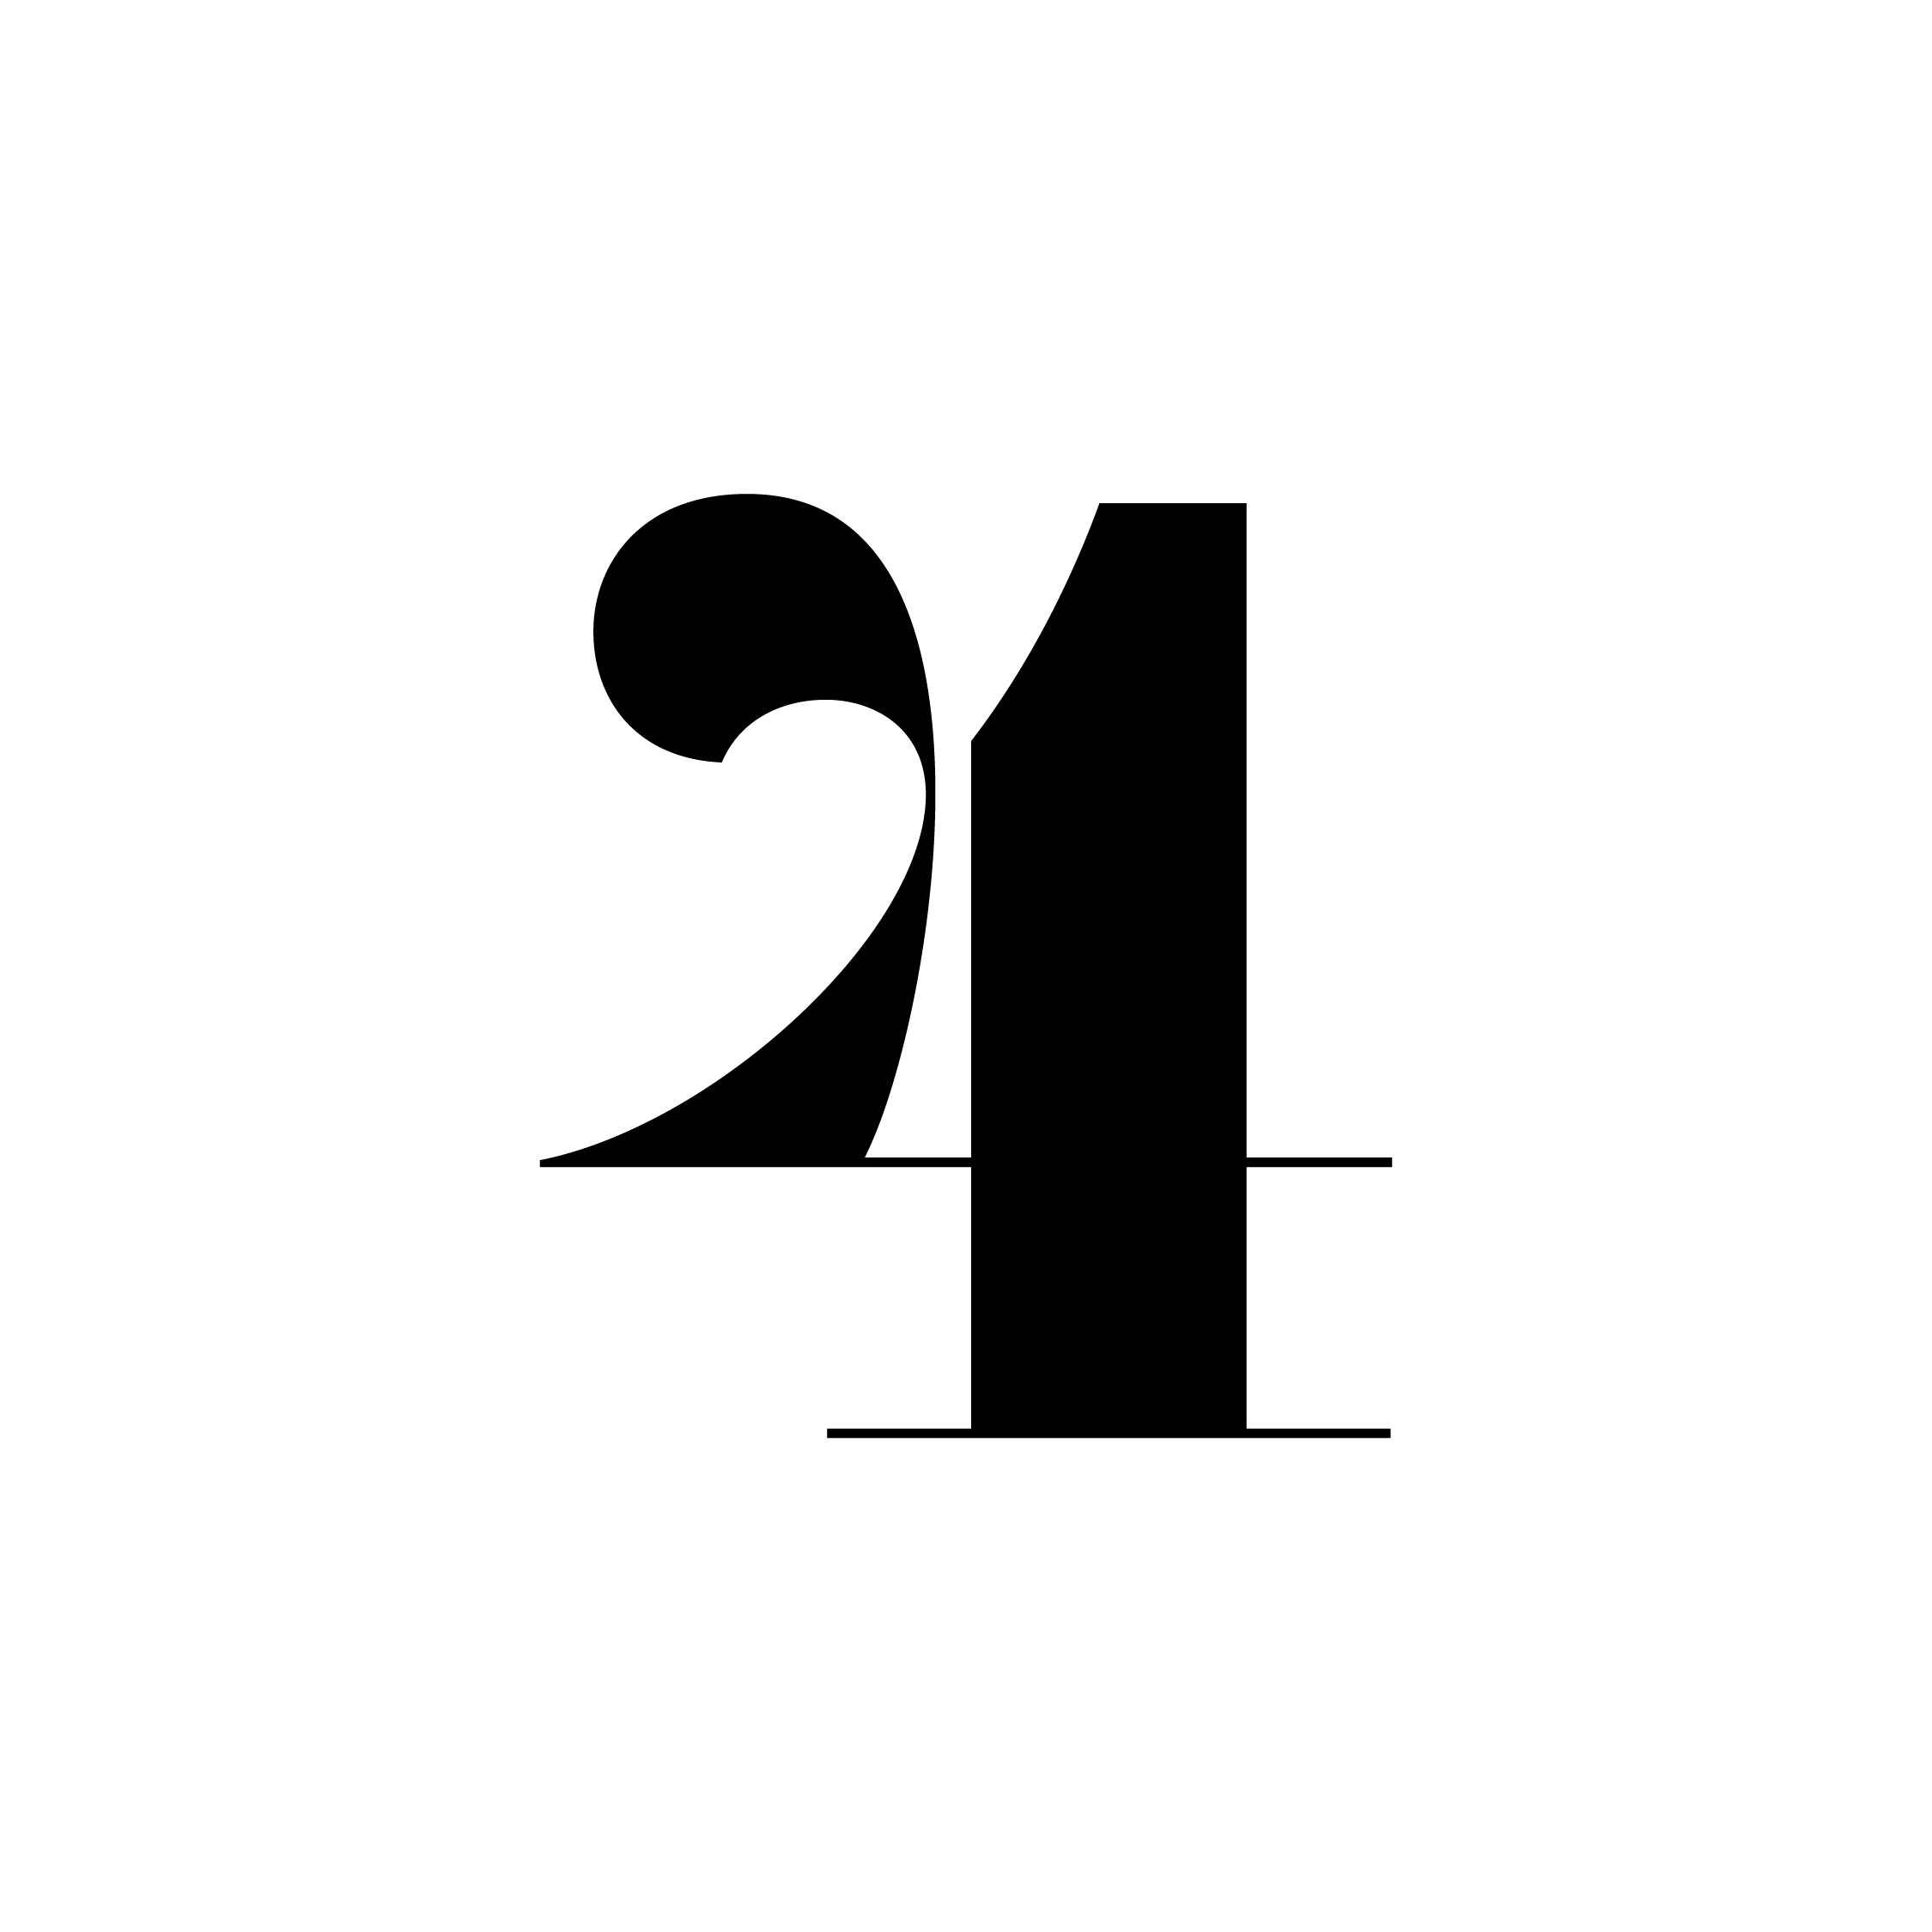 Numbers-04.png